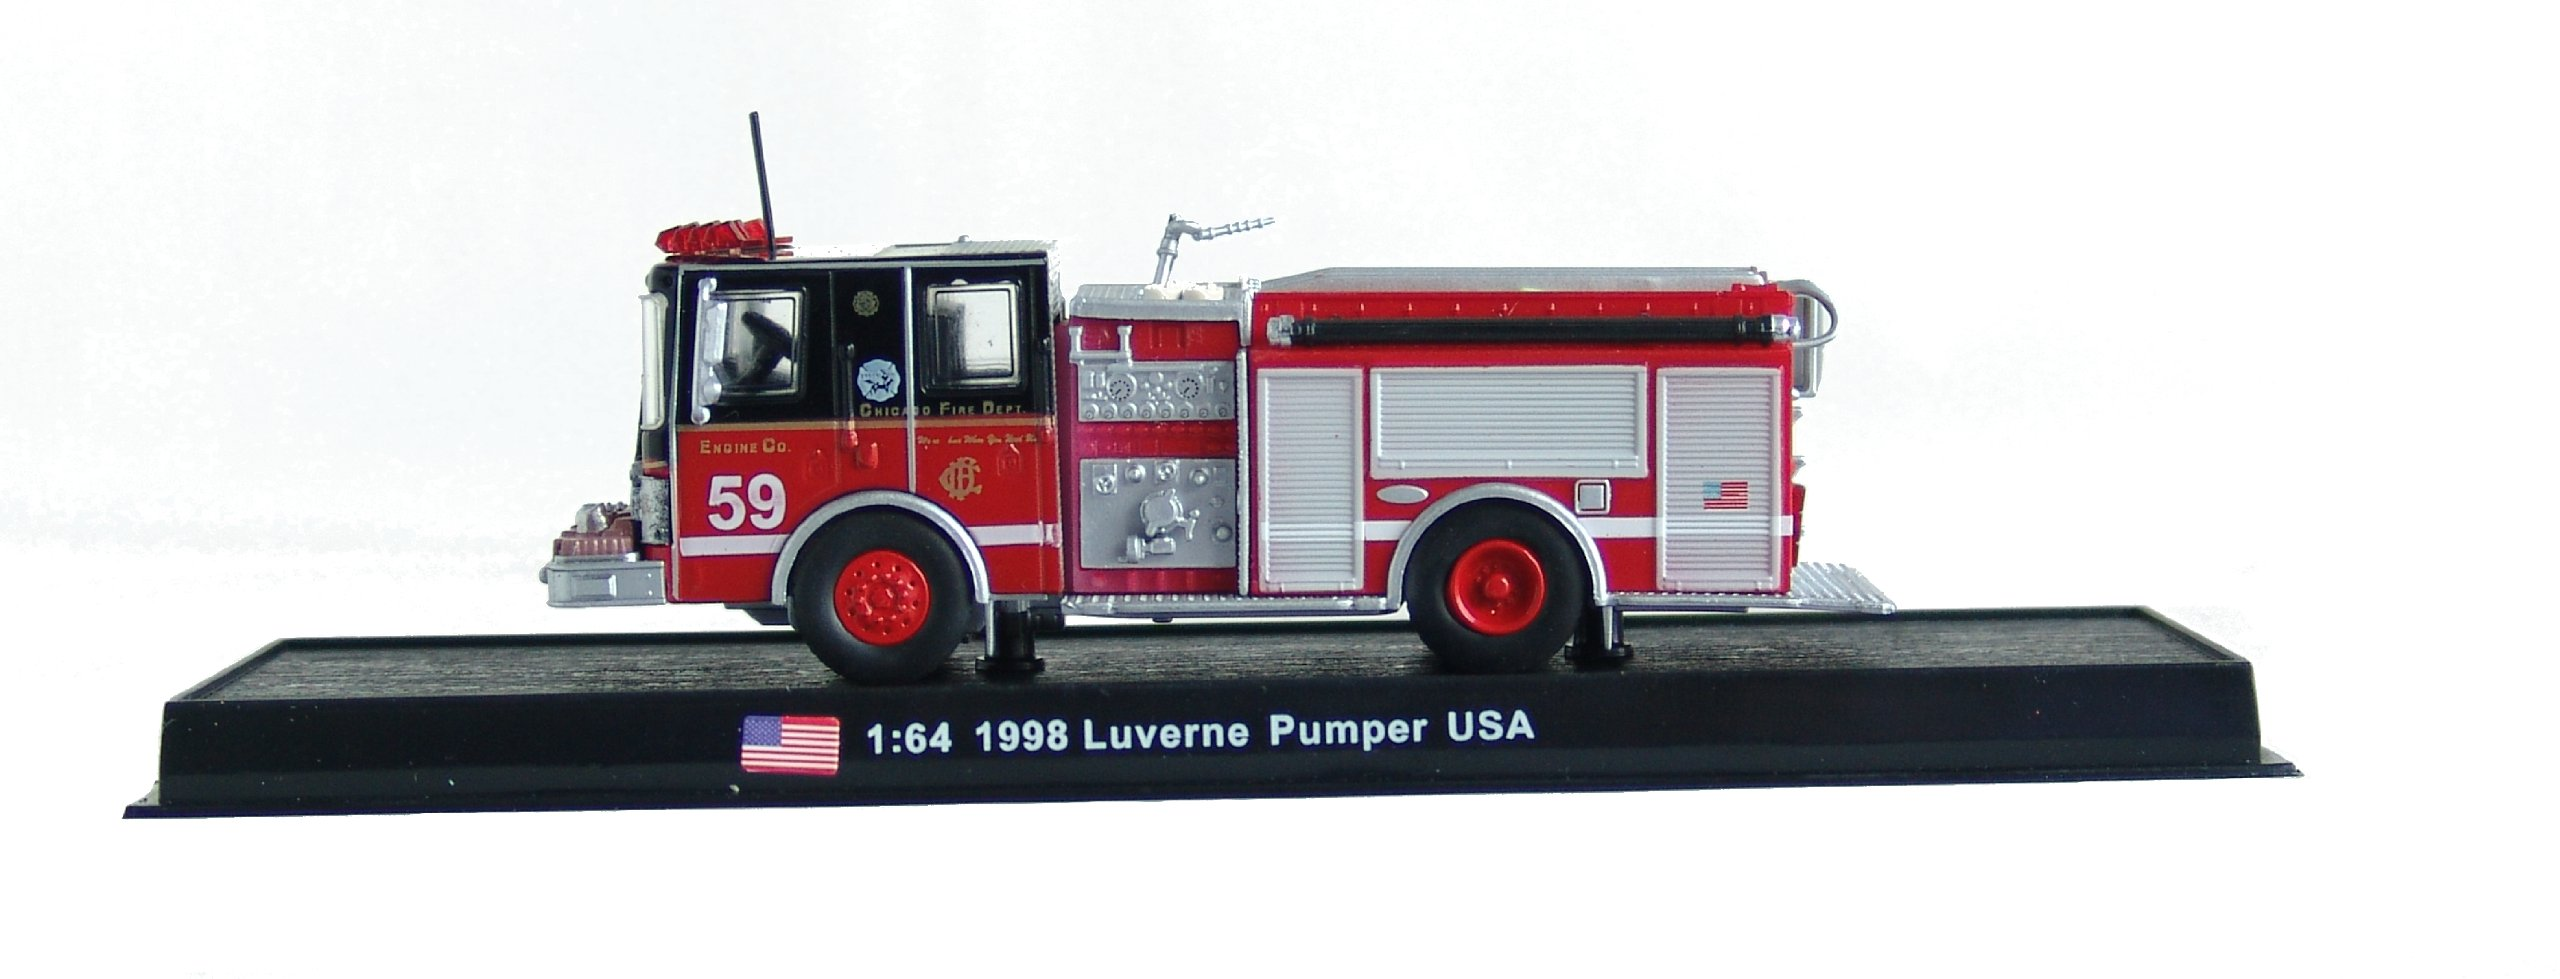 Luverne Pumper Fire Truck Diecast 1:64 Model (Amercom GB-17)